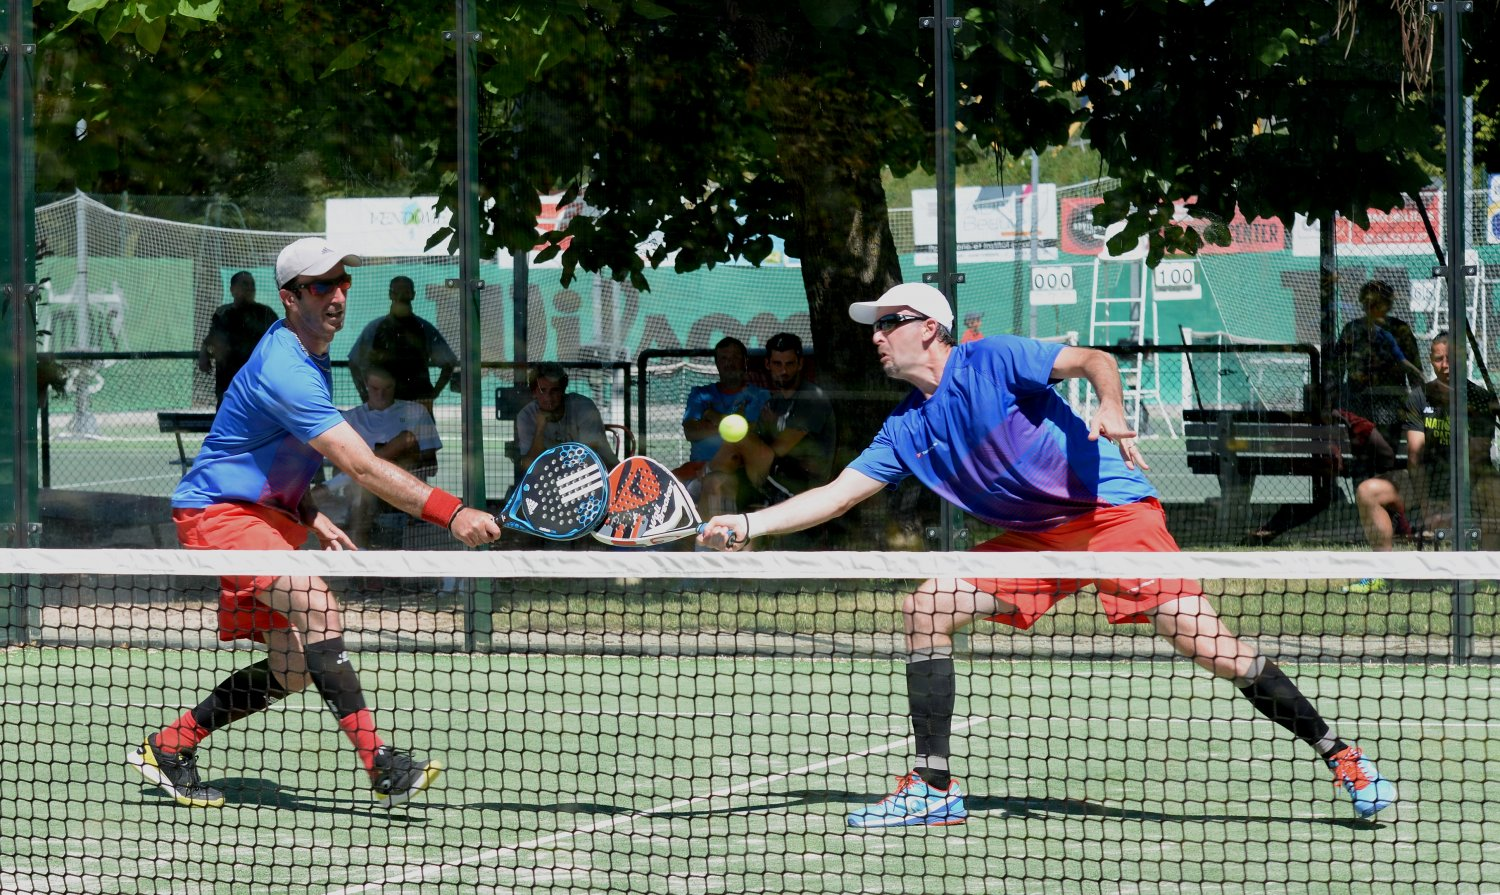 Amiot / Josse champion of the padel